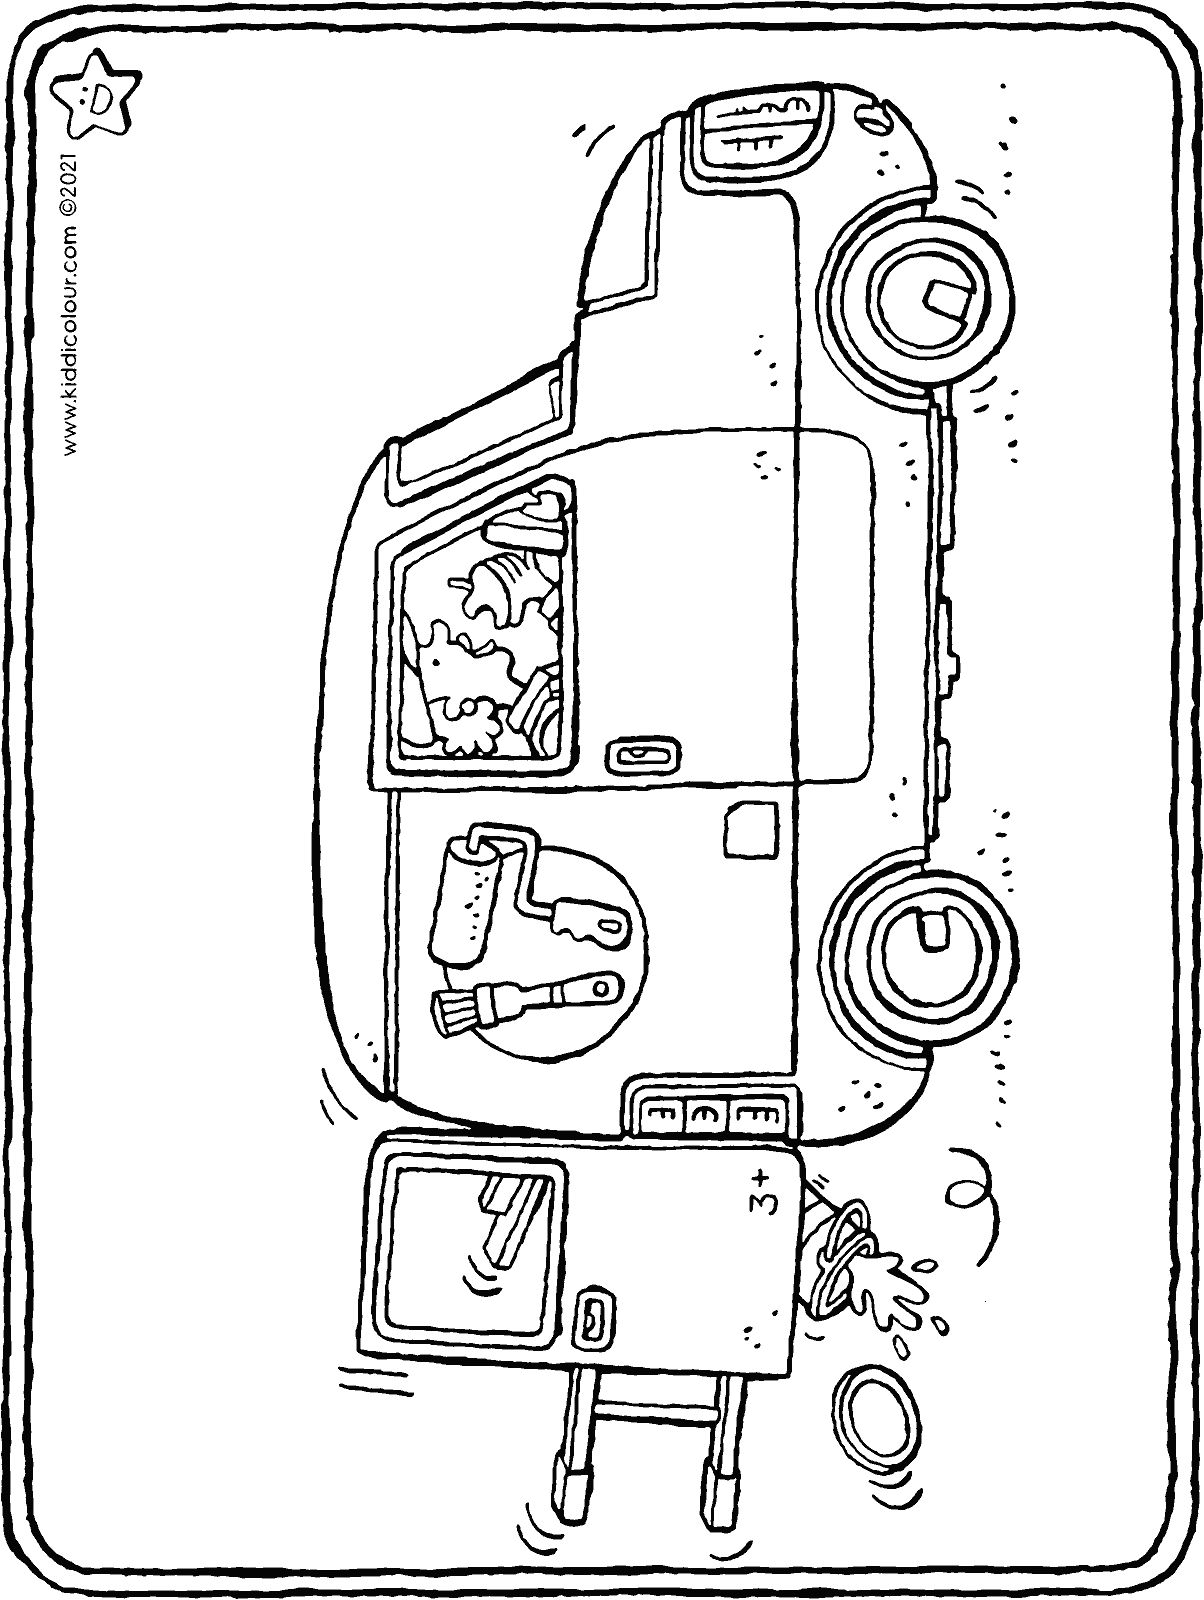 small painter's van colouring page drawing picture 01H